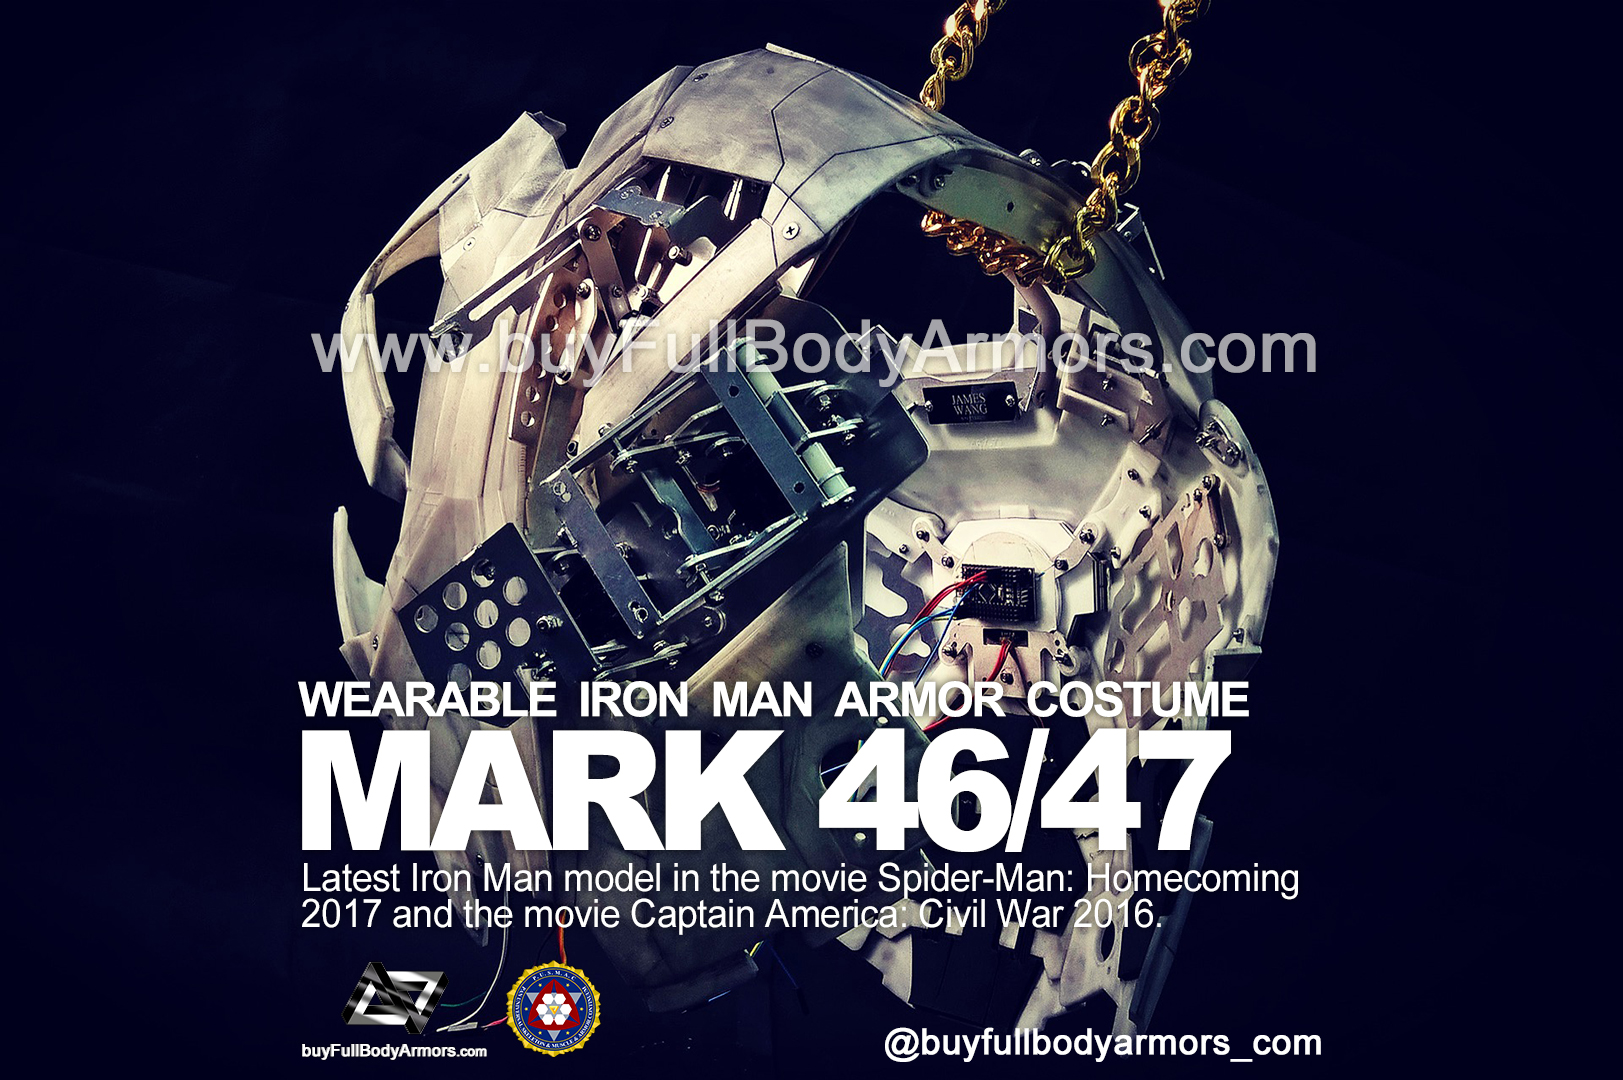 The Motorized Open-Close Mechanical Structure of the Chest Armor - the Wearable Iron Man Mark 47 / 46 Armor Costume Suit prototype